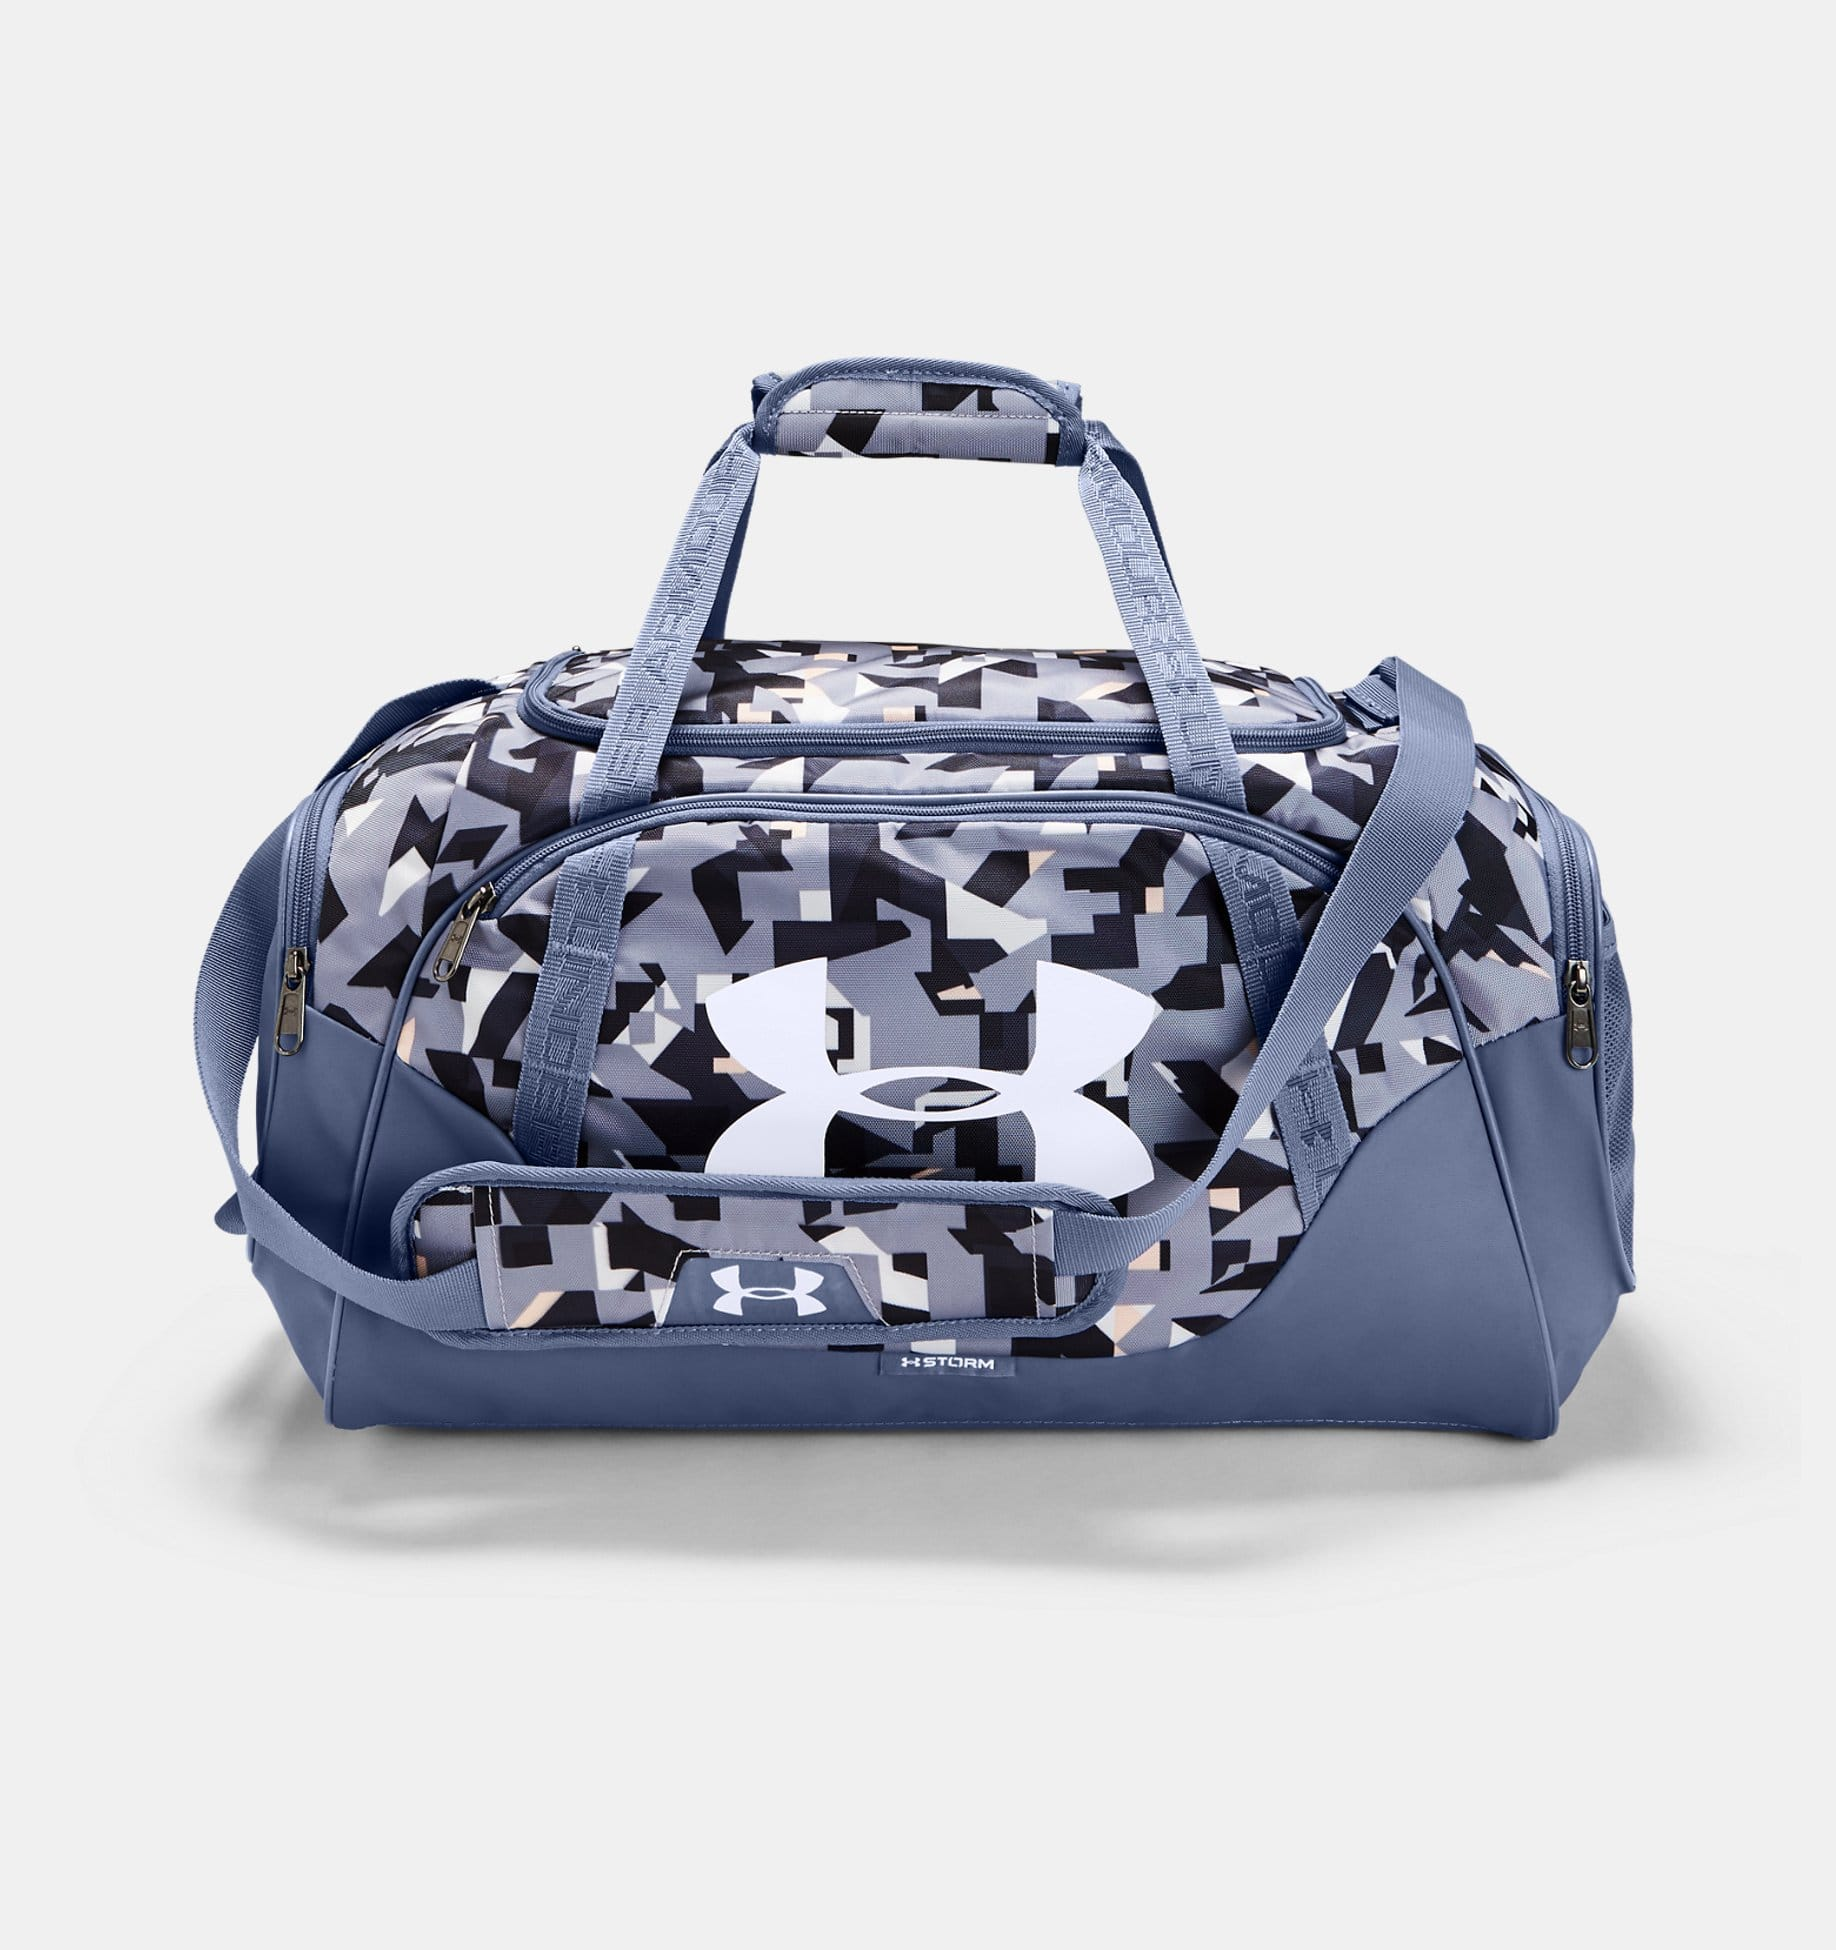 Under Armour UA Undeniable 3.0 Small Duffle Bag (Purple Dusk / Blue Ink) $23.99 or $14.40 for Military, First Responders + FS